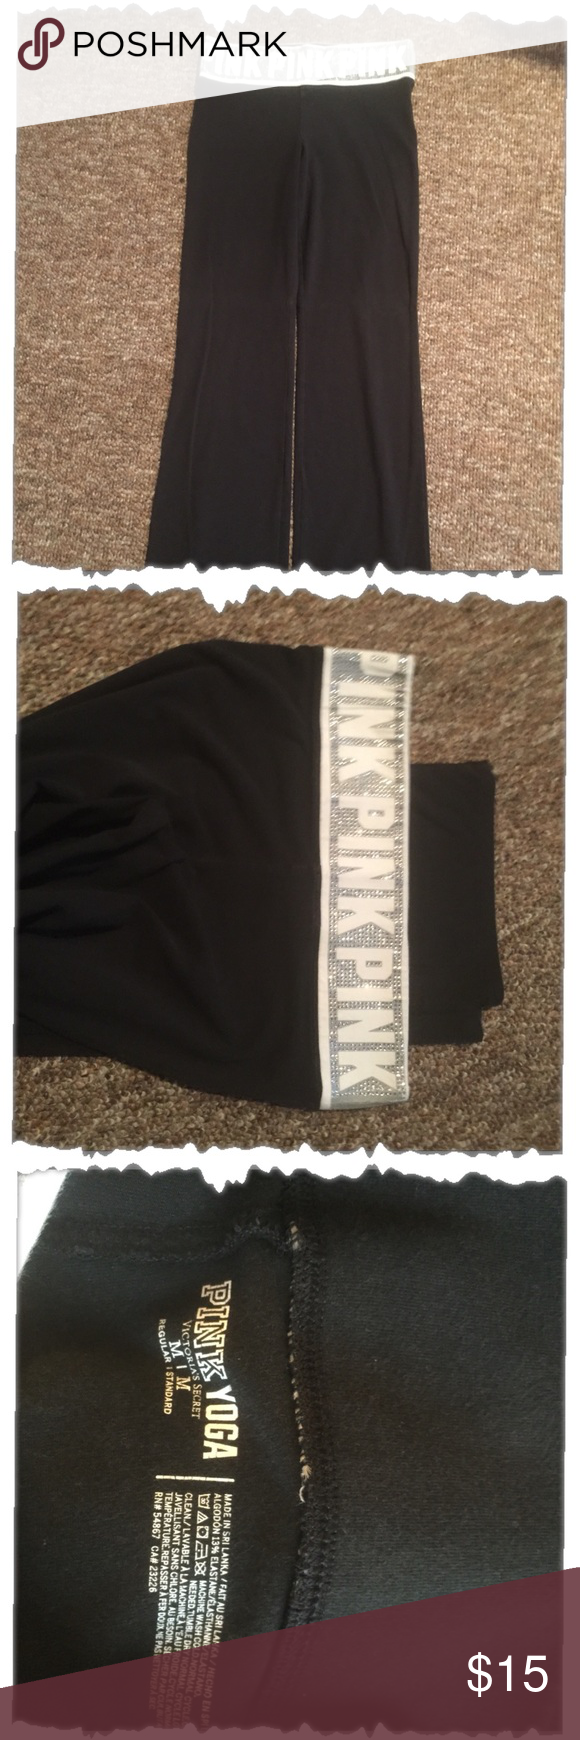 Victoria Secret boot leg yoga pants Nice pair of yoga pants, size is medium. The band is white with silver bling. The length is medium! Victoria's Secret Pants Boot Cut & Flare